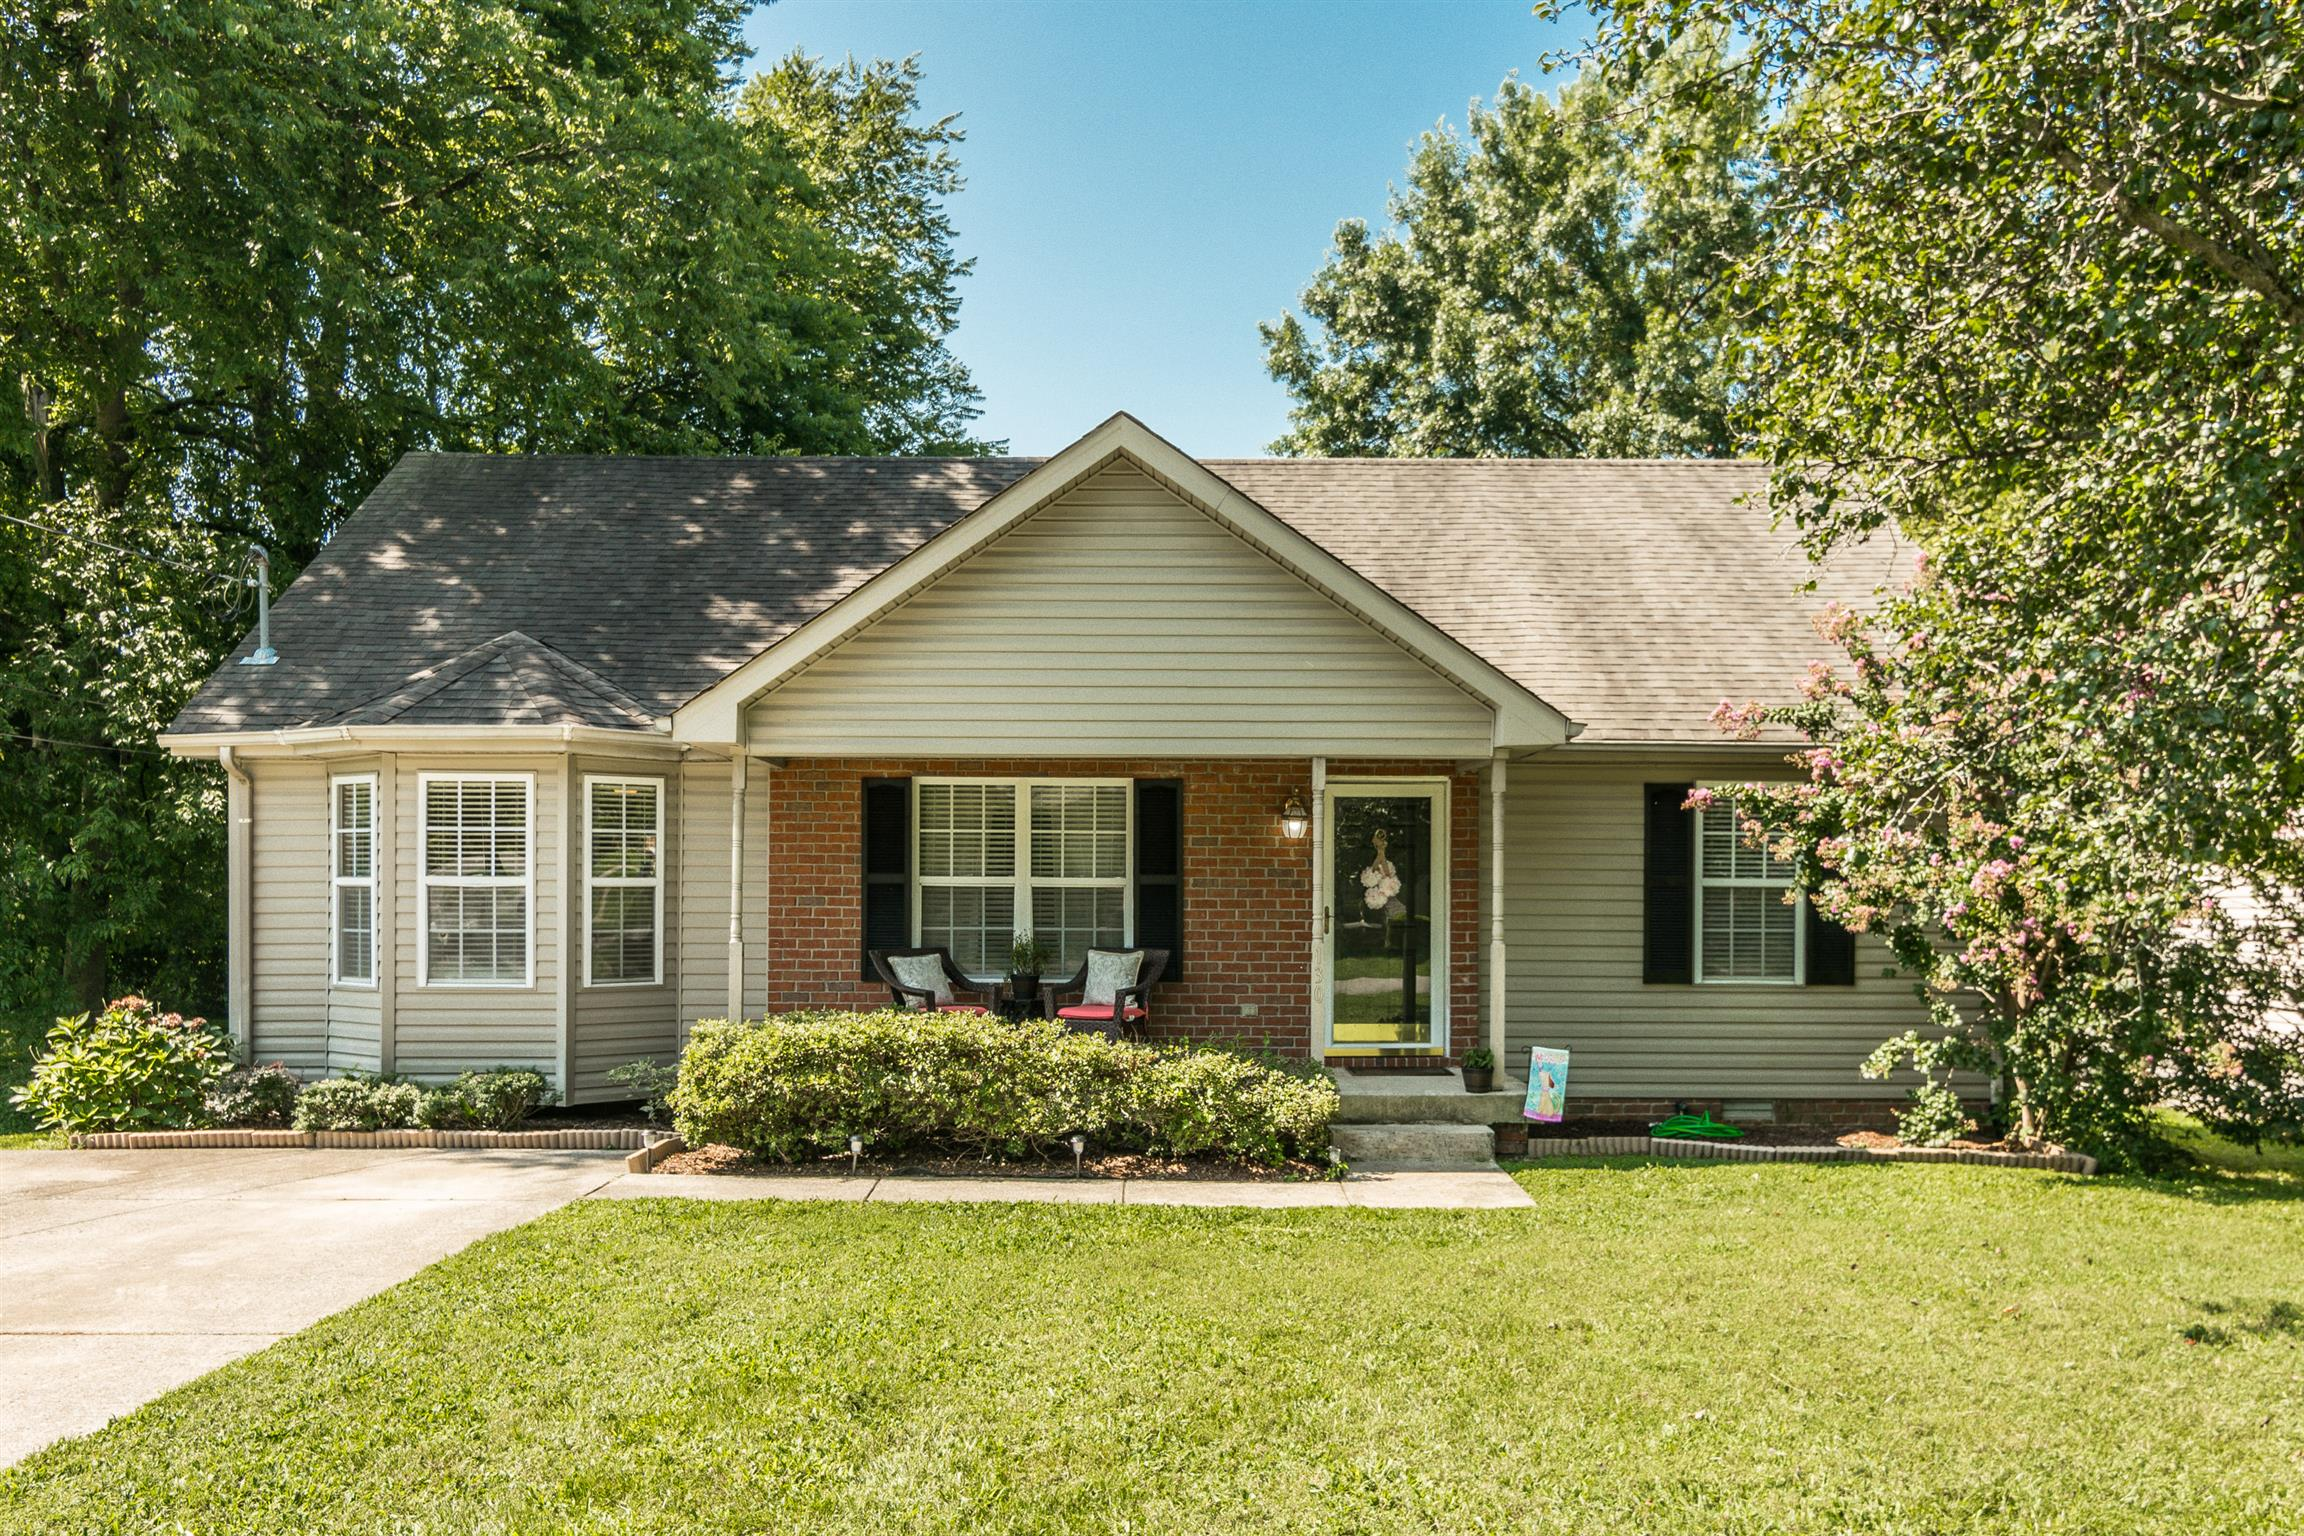 130 RIFLE RANGE RD., Old Hickory, TN 37138 - Old Hickory, TN real estate listing